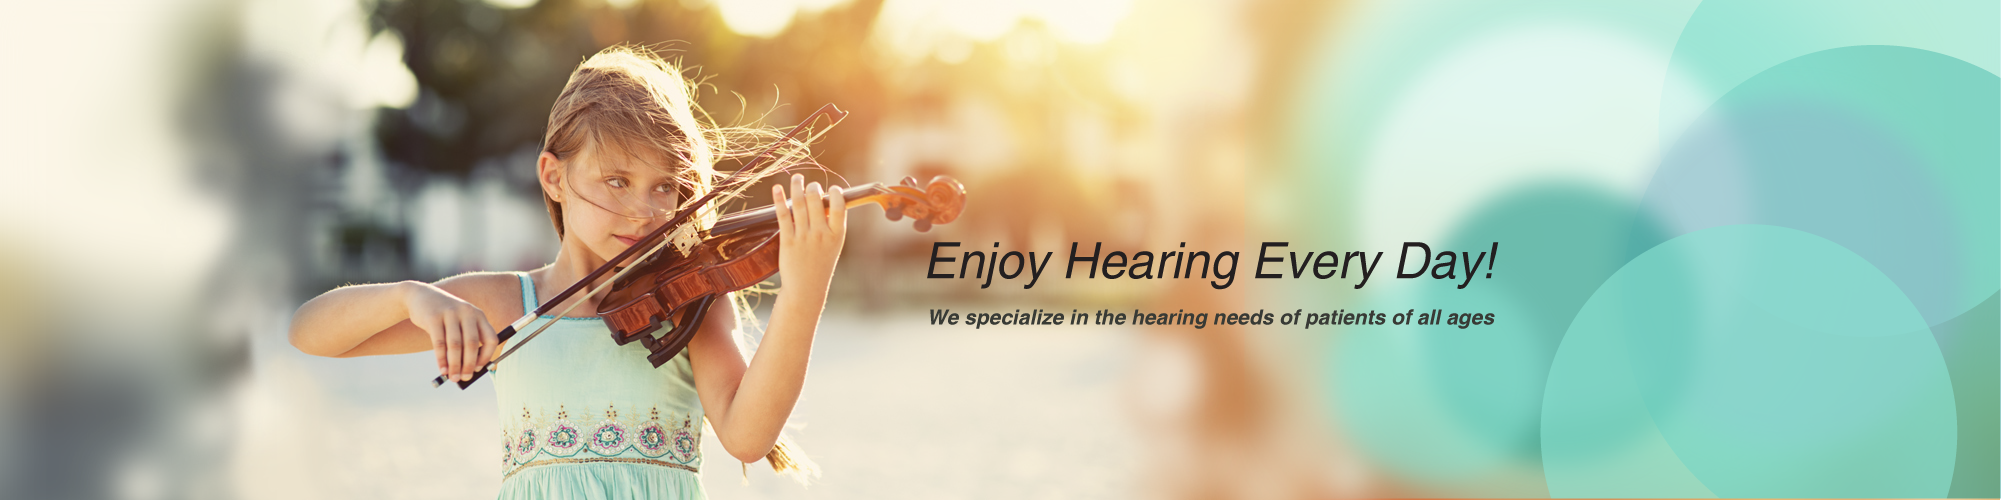 Enjoy Hearing Everyday!